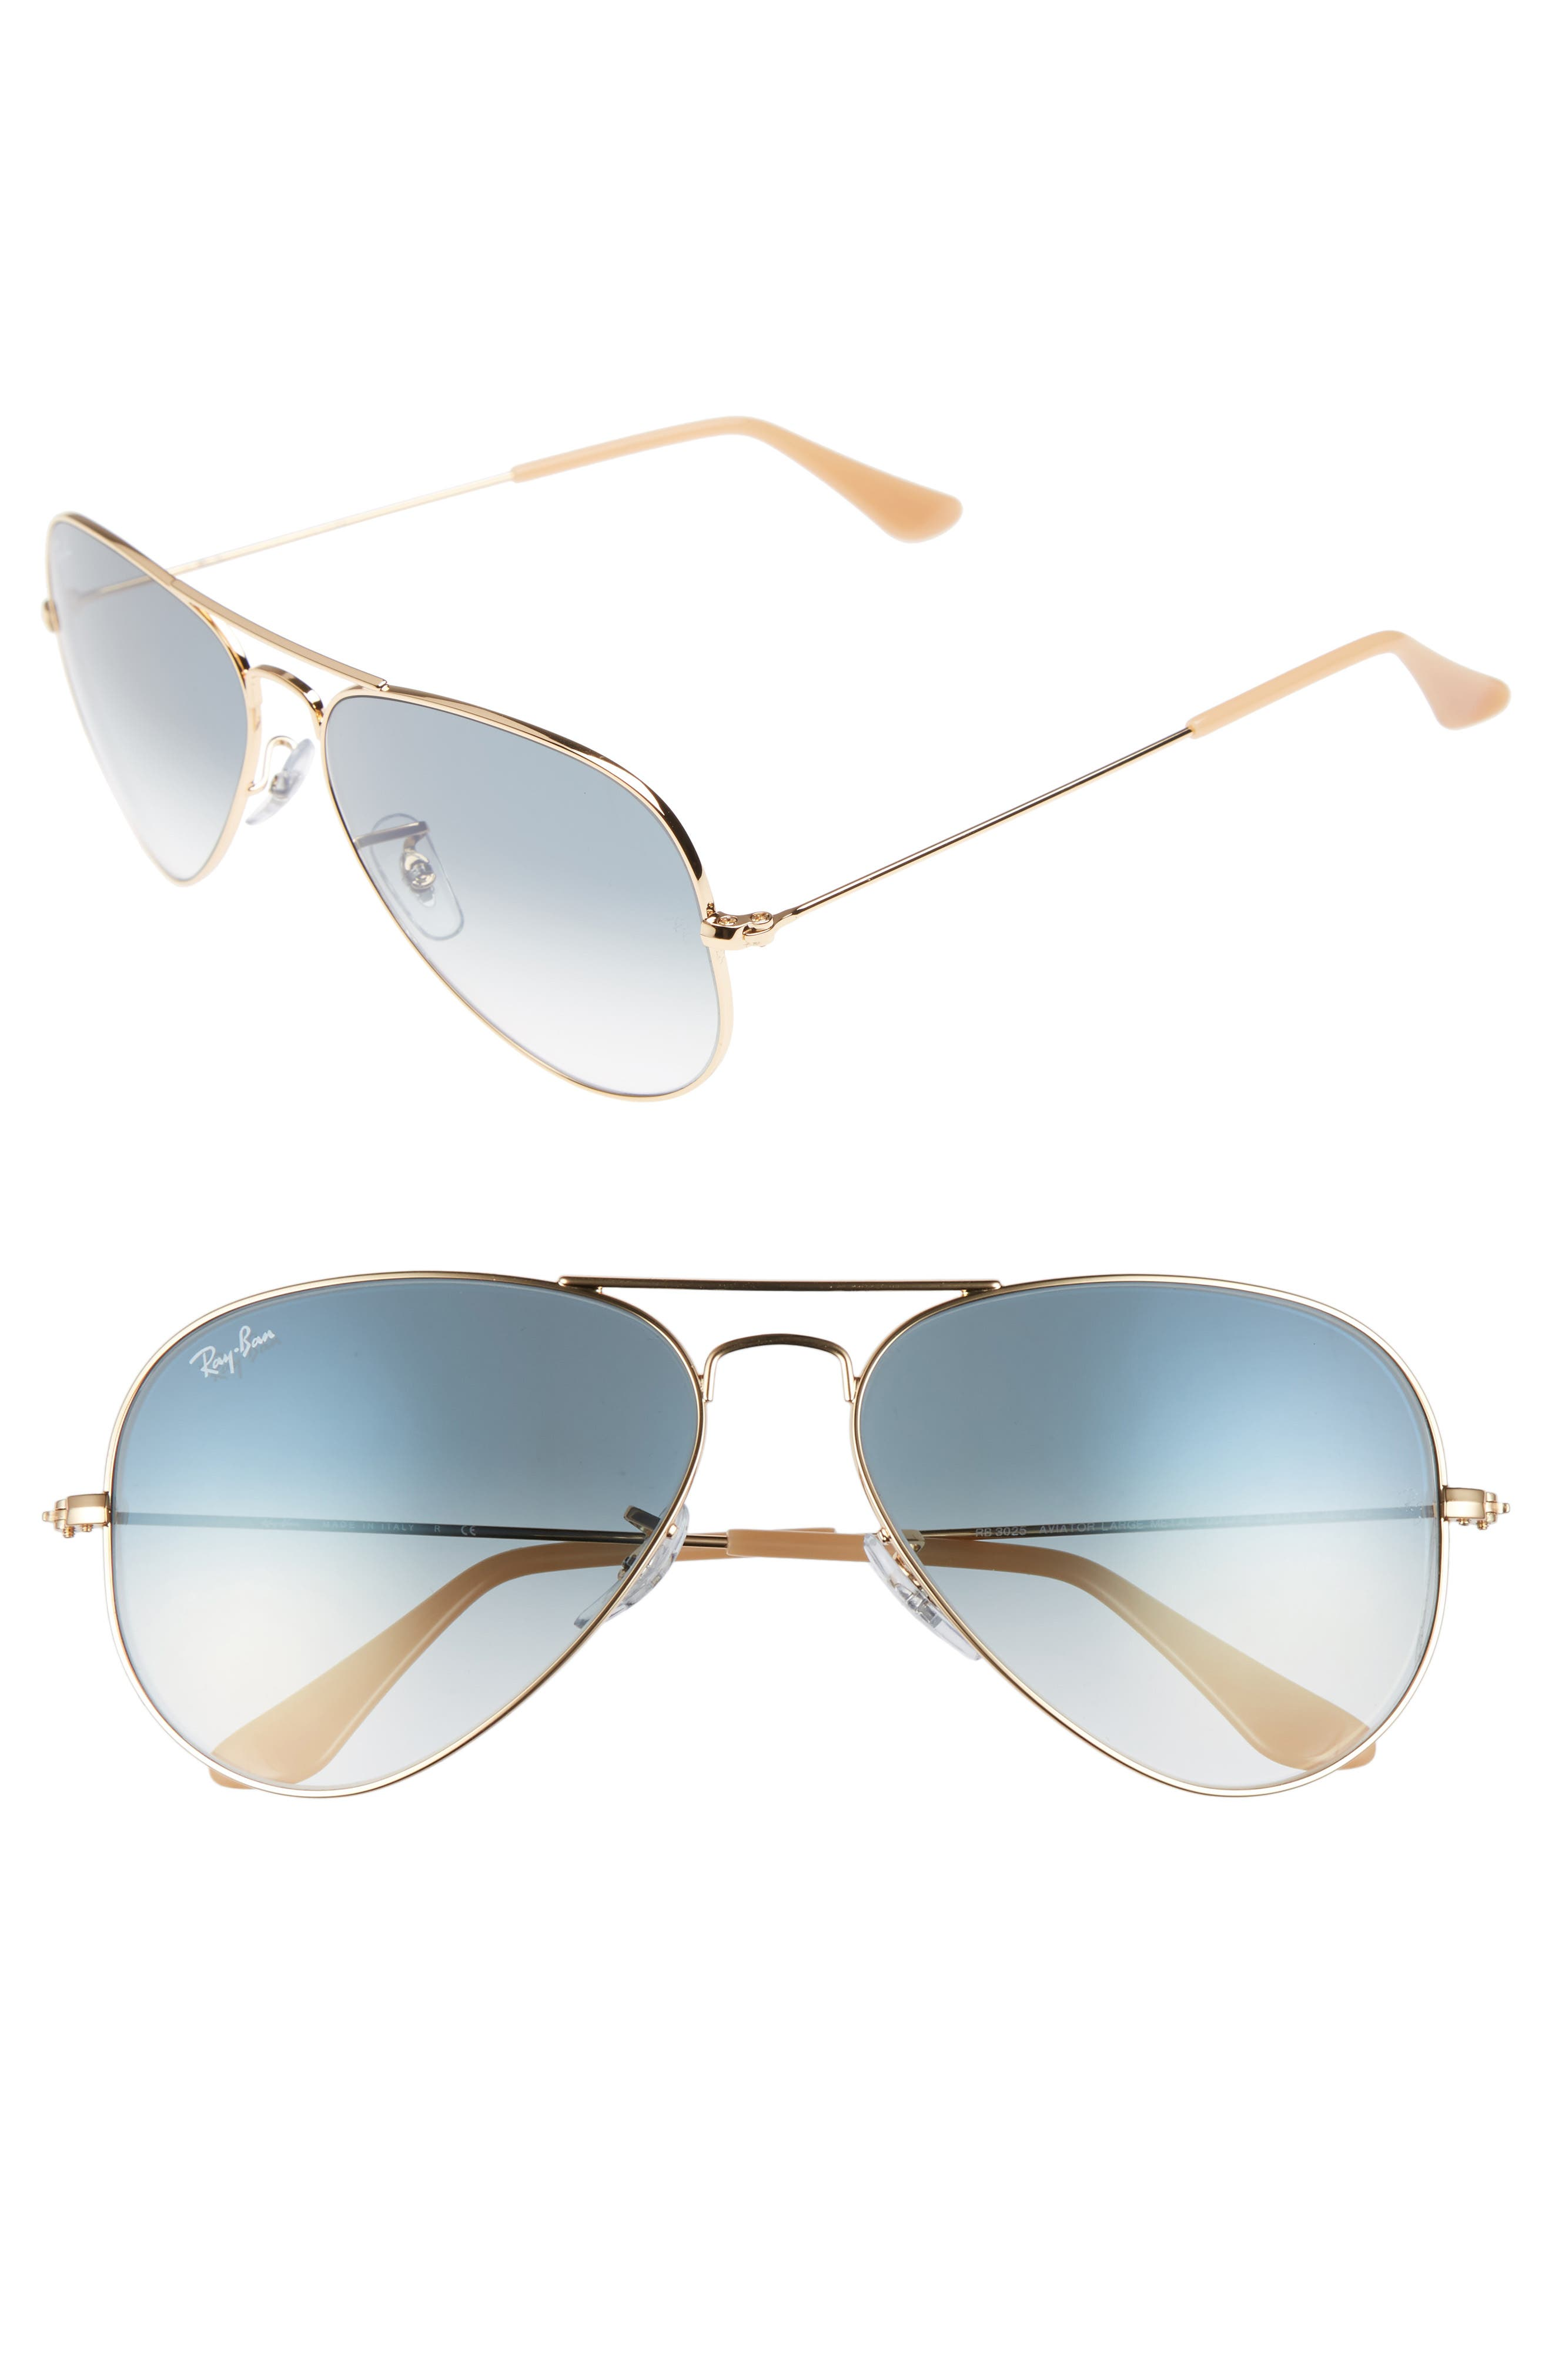 Original Aviator 58mm Sunglasses,                             Main thumbnail 1, color,                             Matte Gold/ Blue Mirror